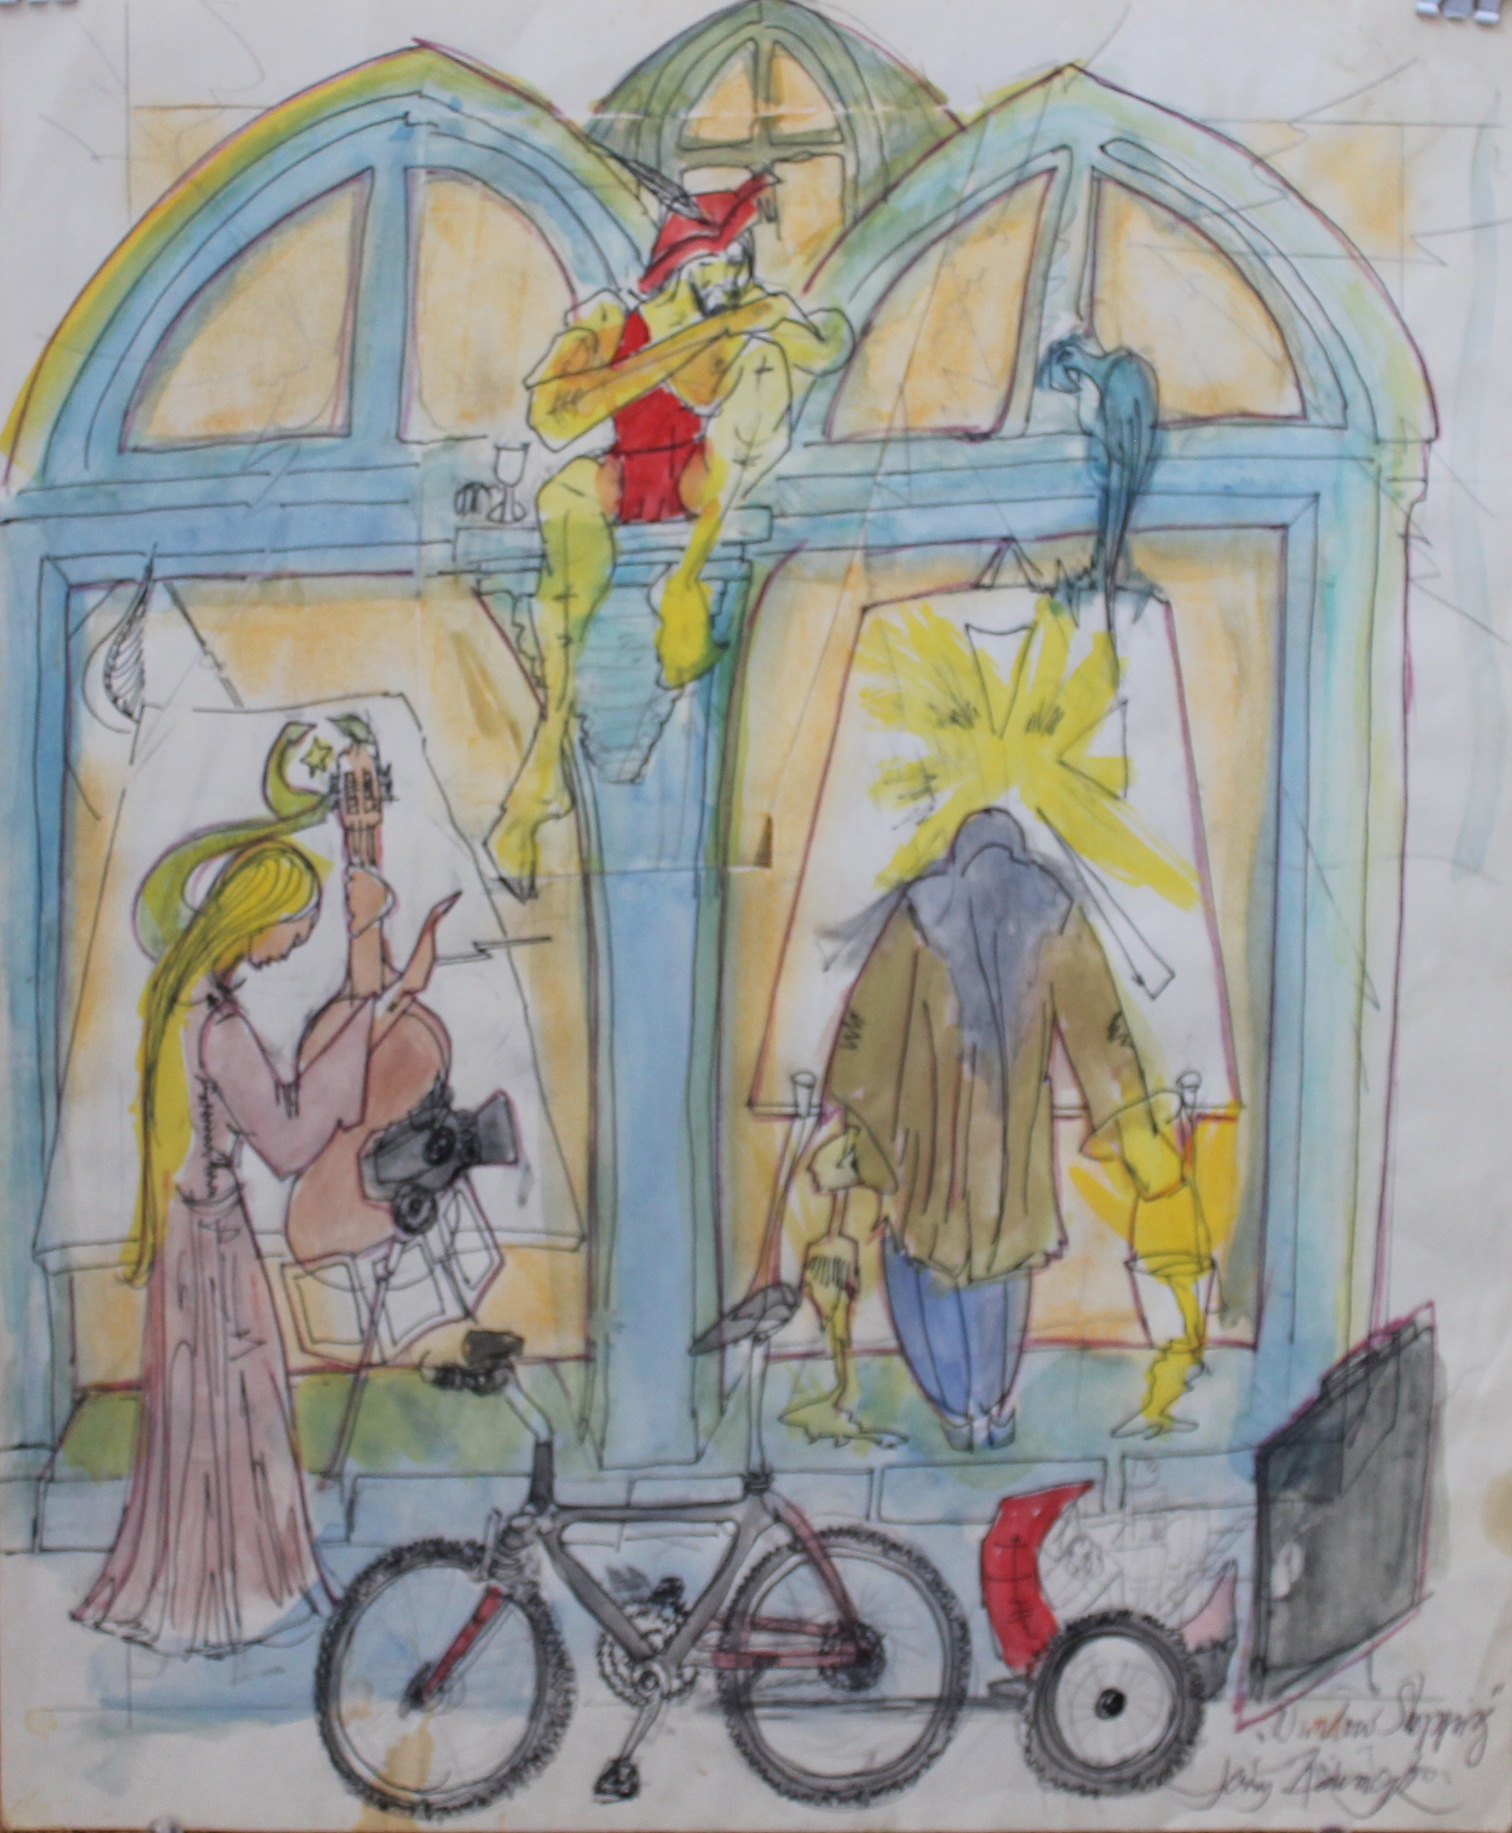 Watercolour painting of PARC façade with bicycle and figures